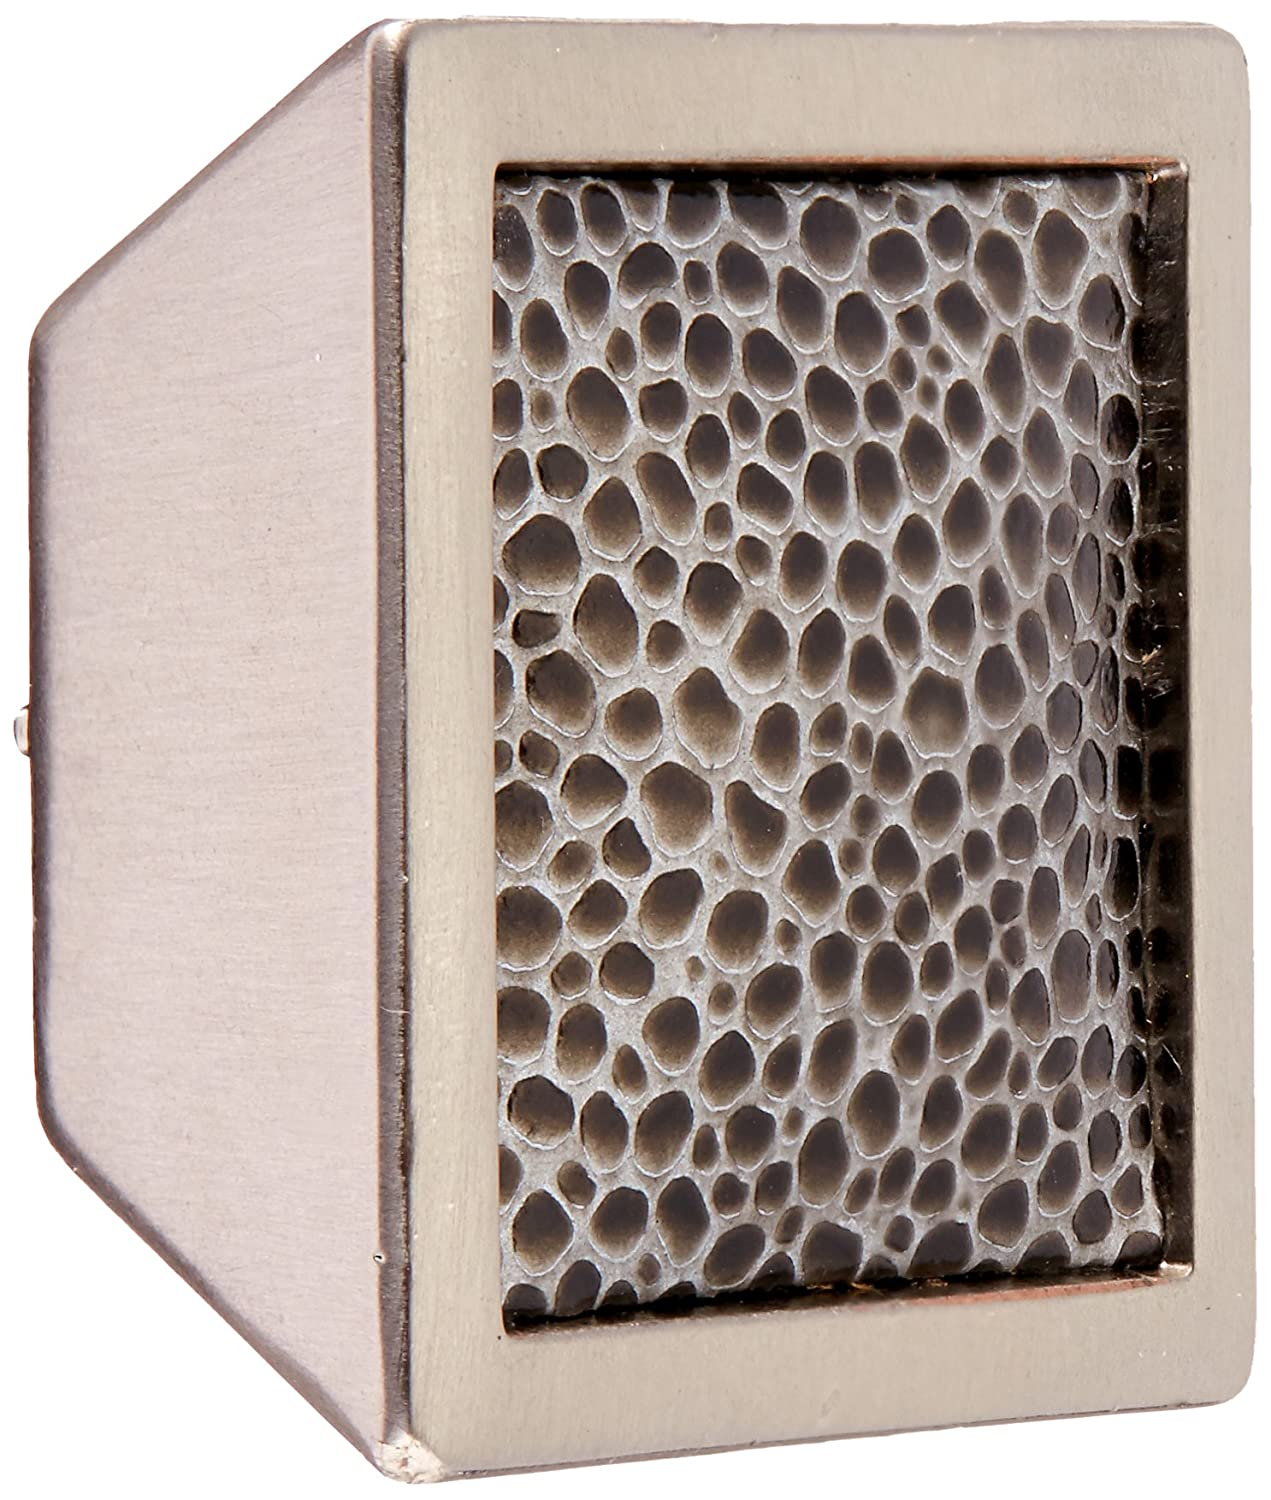 Oil Rubbed Bronze and Sand Pebble Laurey 12297 Cabinet Hardware 1-5//8-Inch Square Knob